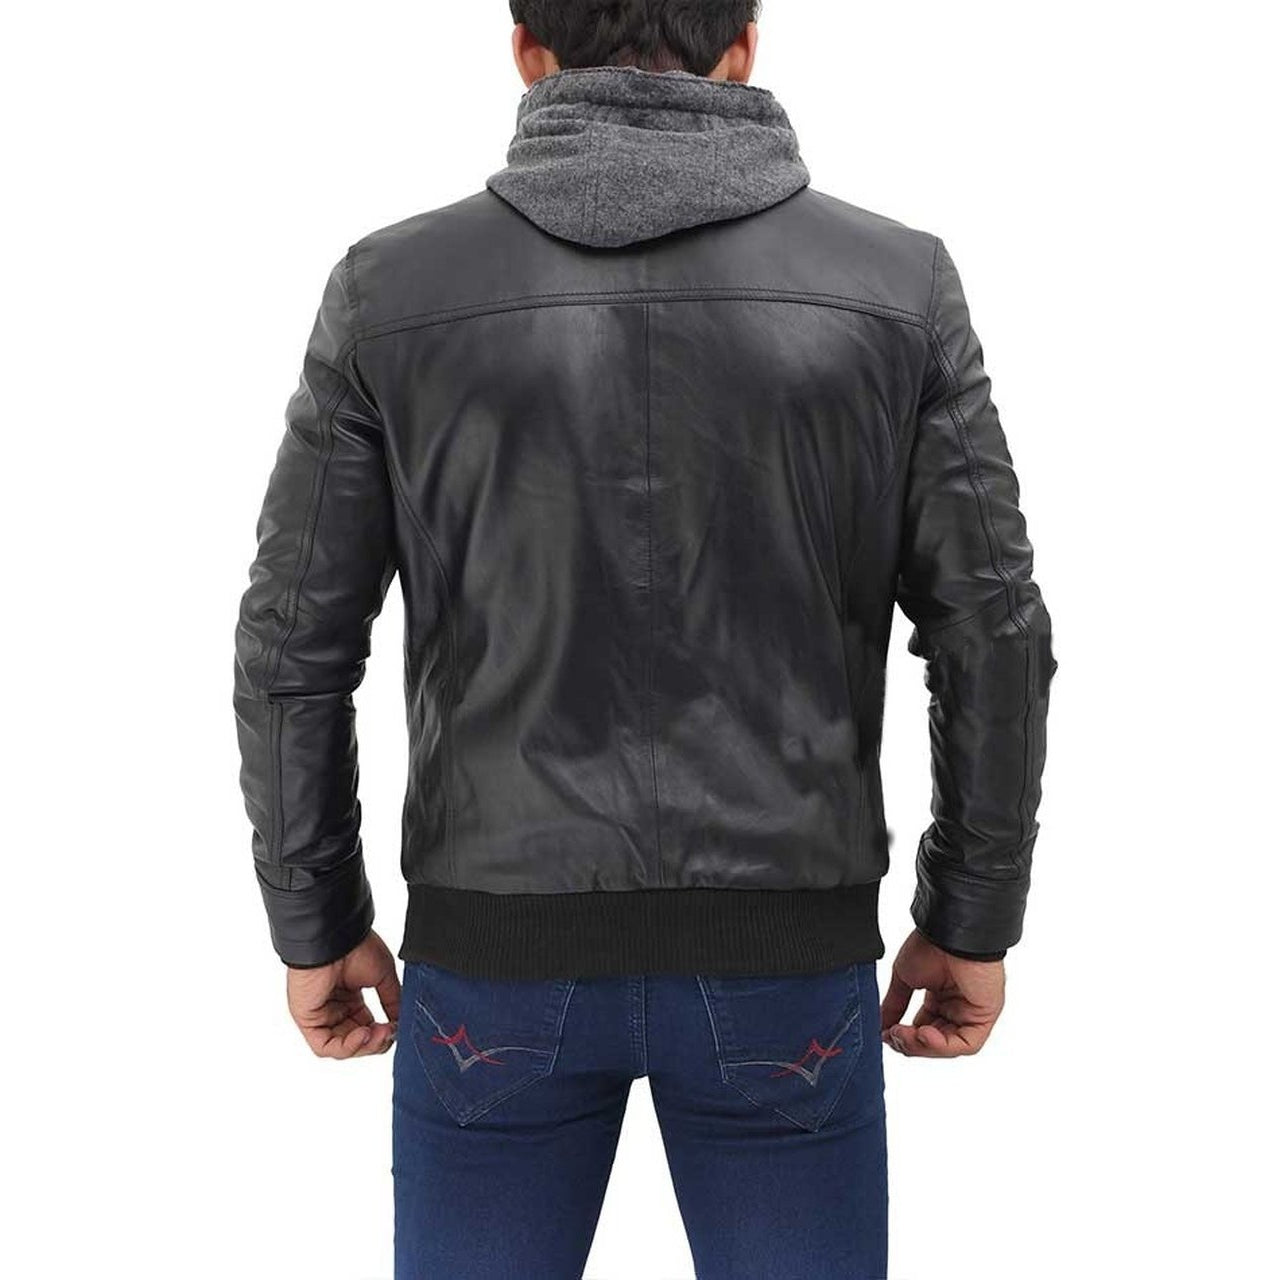 Black Hooded Real Leather Jacket - Leather Jacket